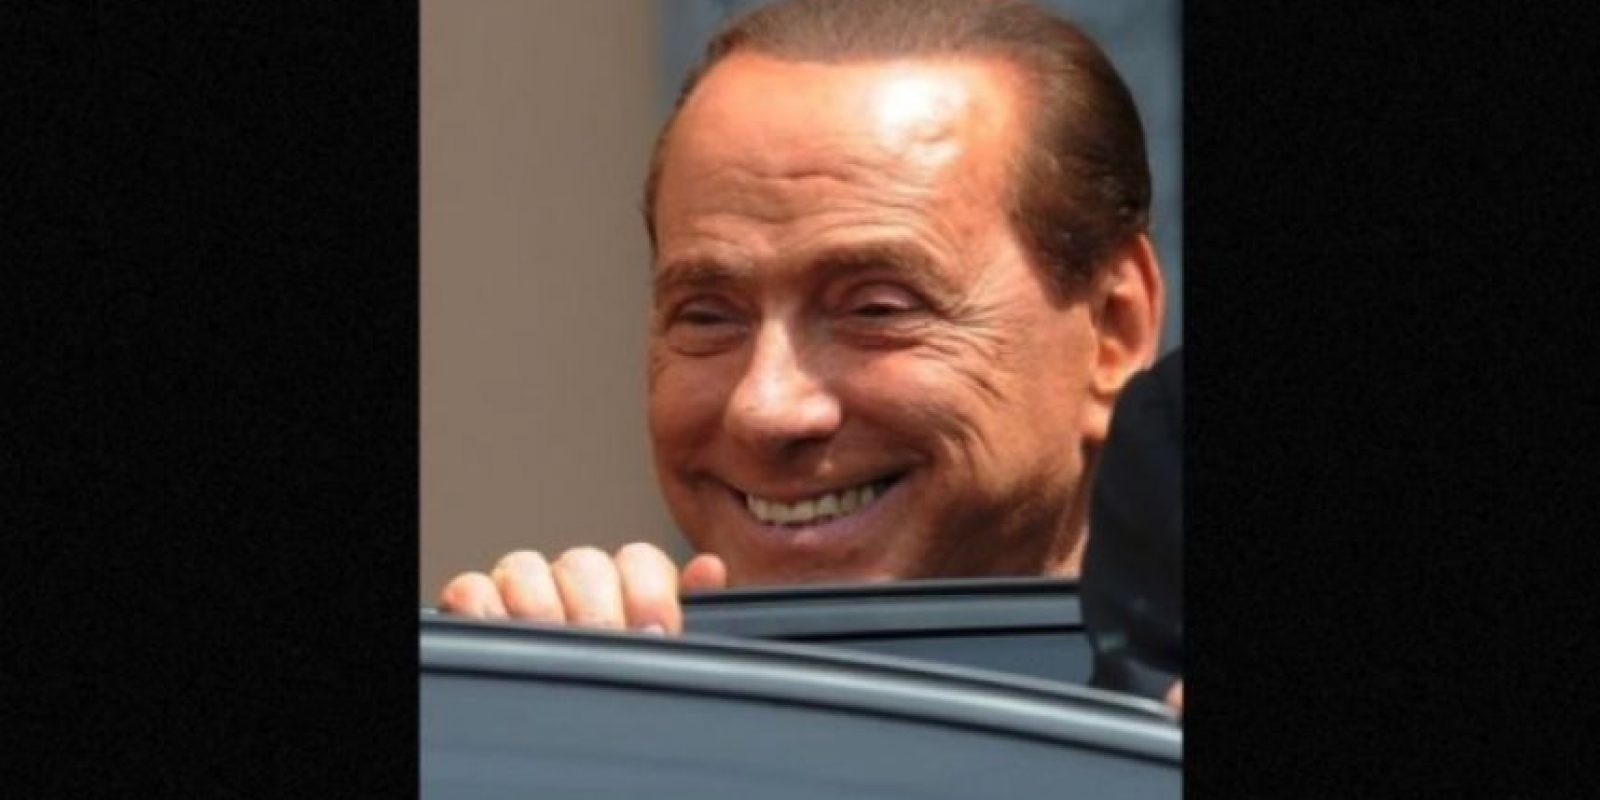 Silvio Berlusconi Foto: Getty Images